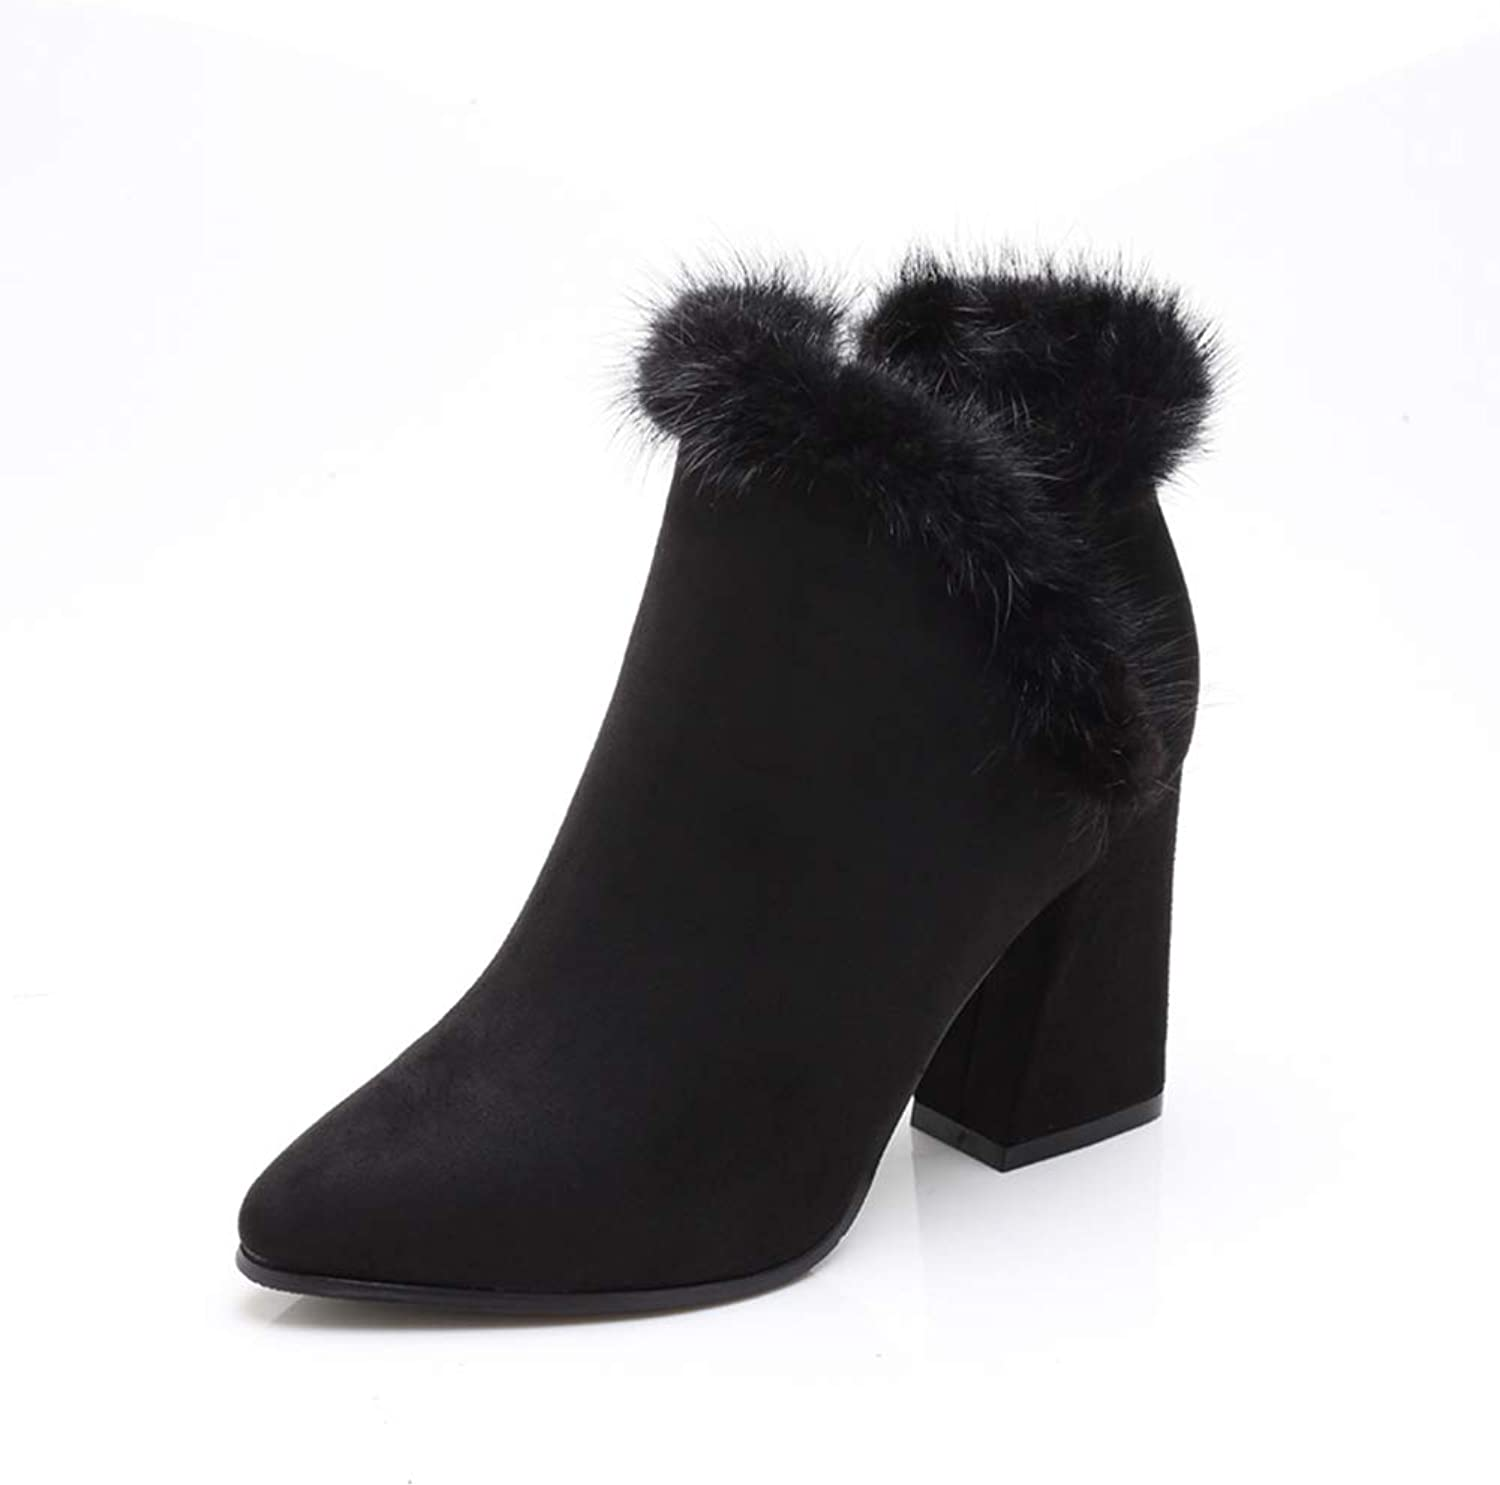 Zarbrina Womens Chunky Block Heel Fur Lined Ankle Boots Fashion Round Toe Short Plush High Platform Zipper Up Winter Warm Snow Party shoes